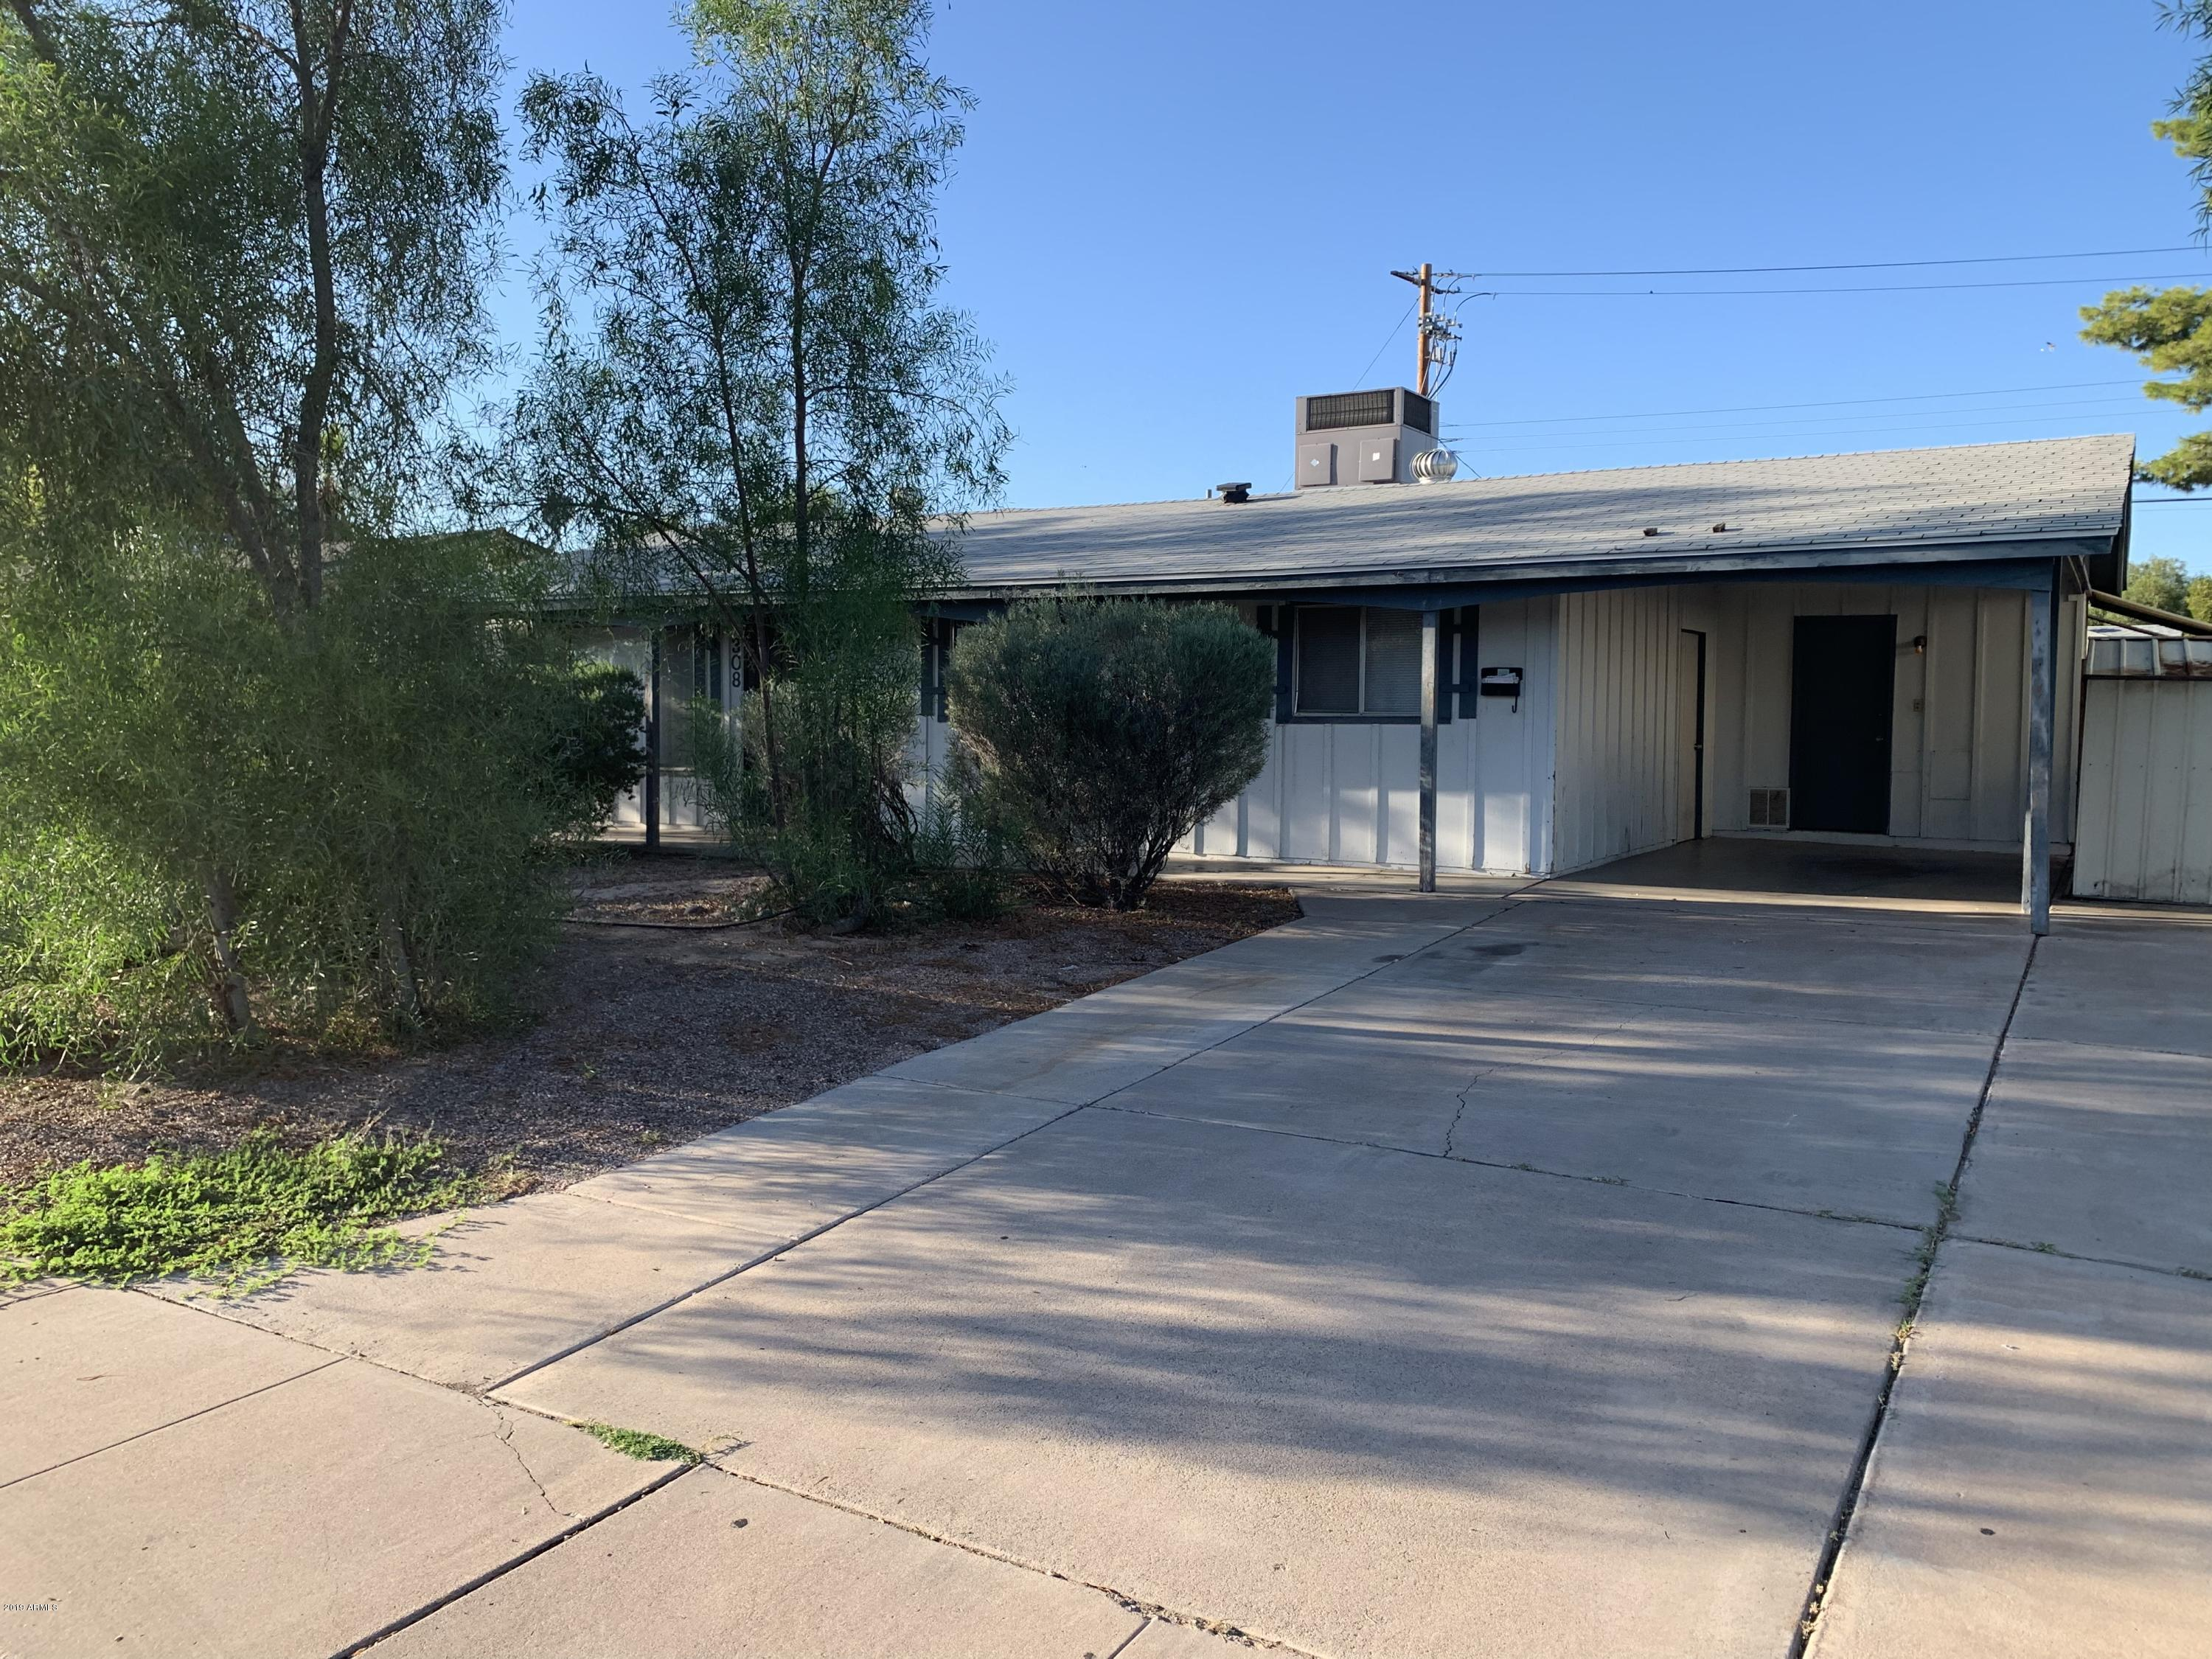 Photo of 308 E TAYLOR Street, Tempe, AZ 85281